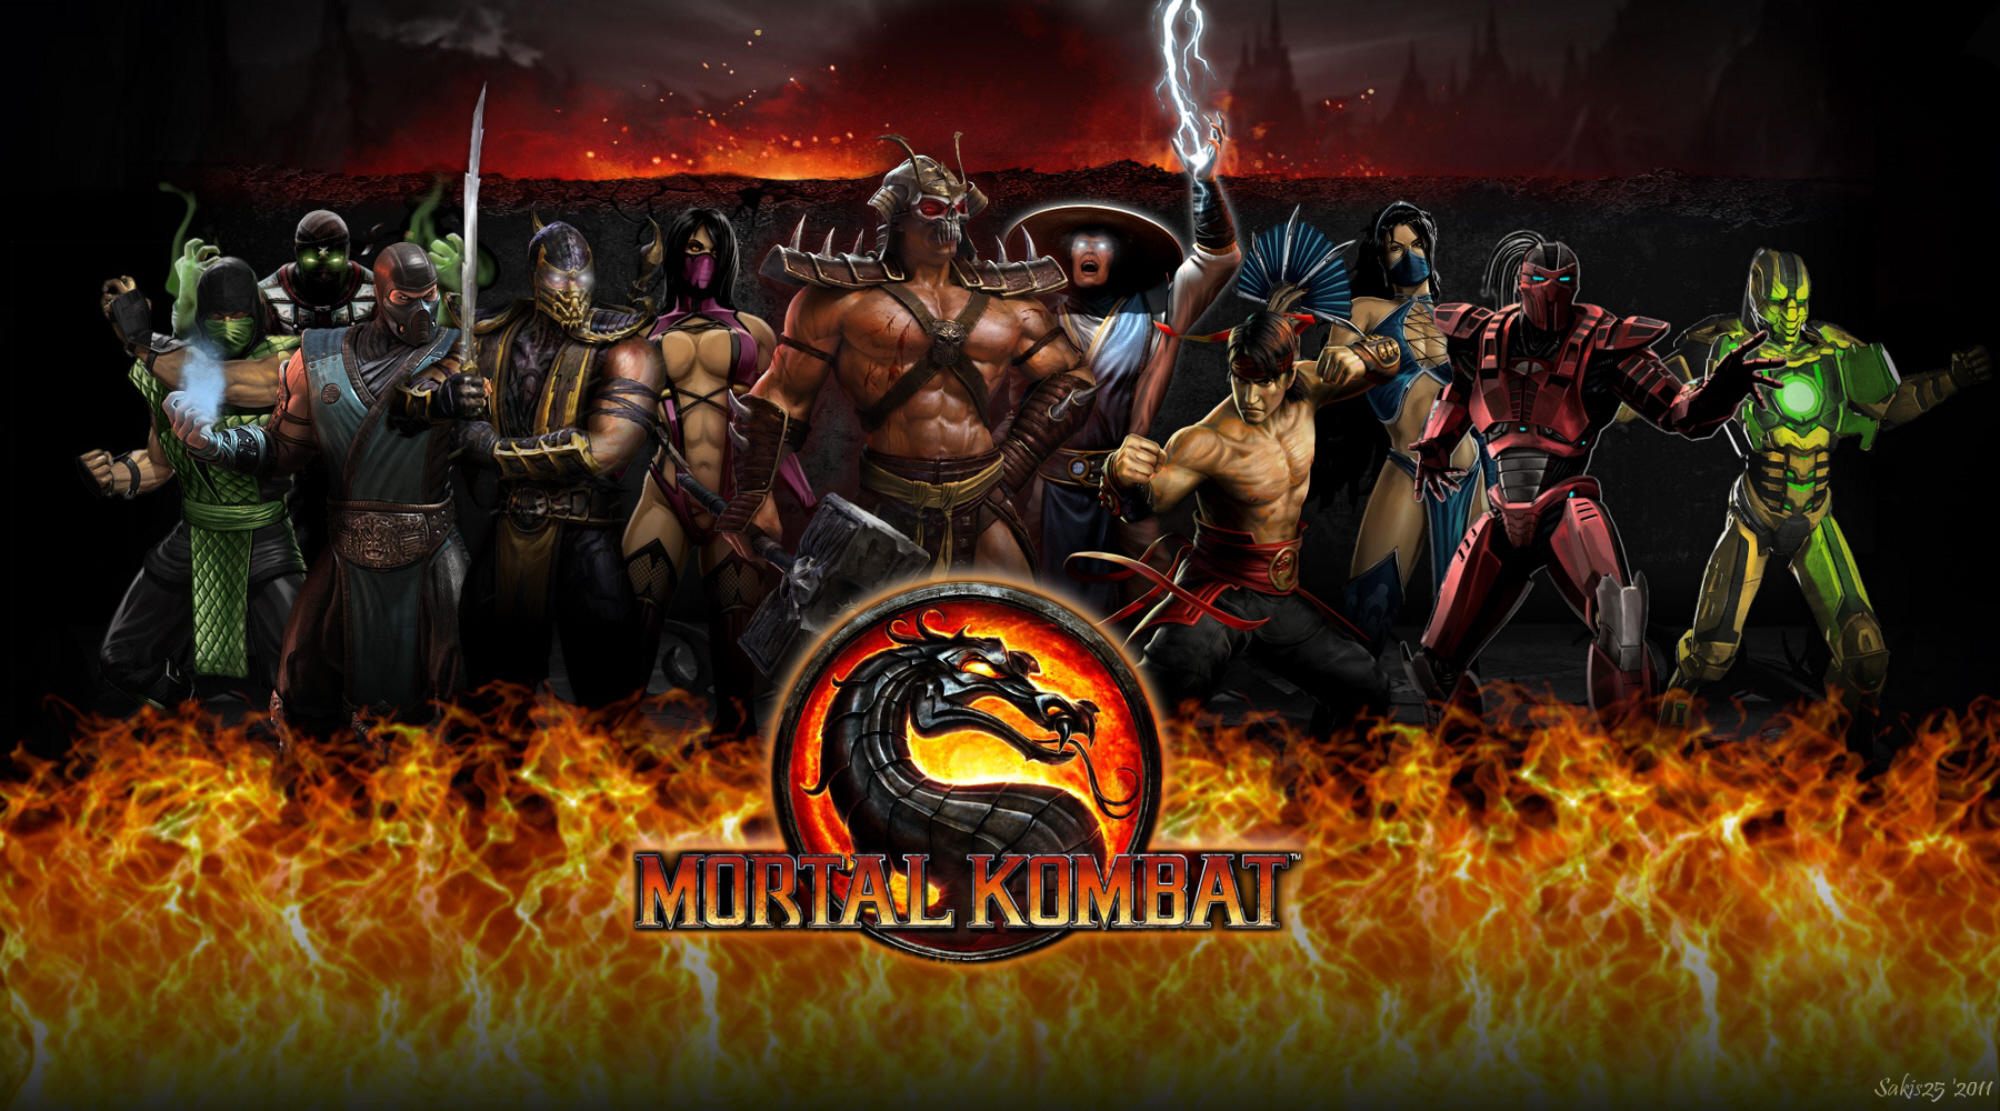 Mortal Kombat 2011 Wallpaper